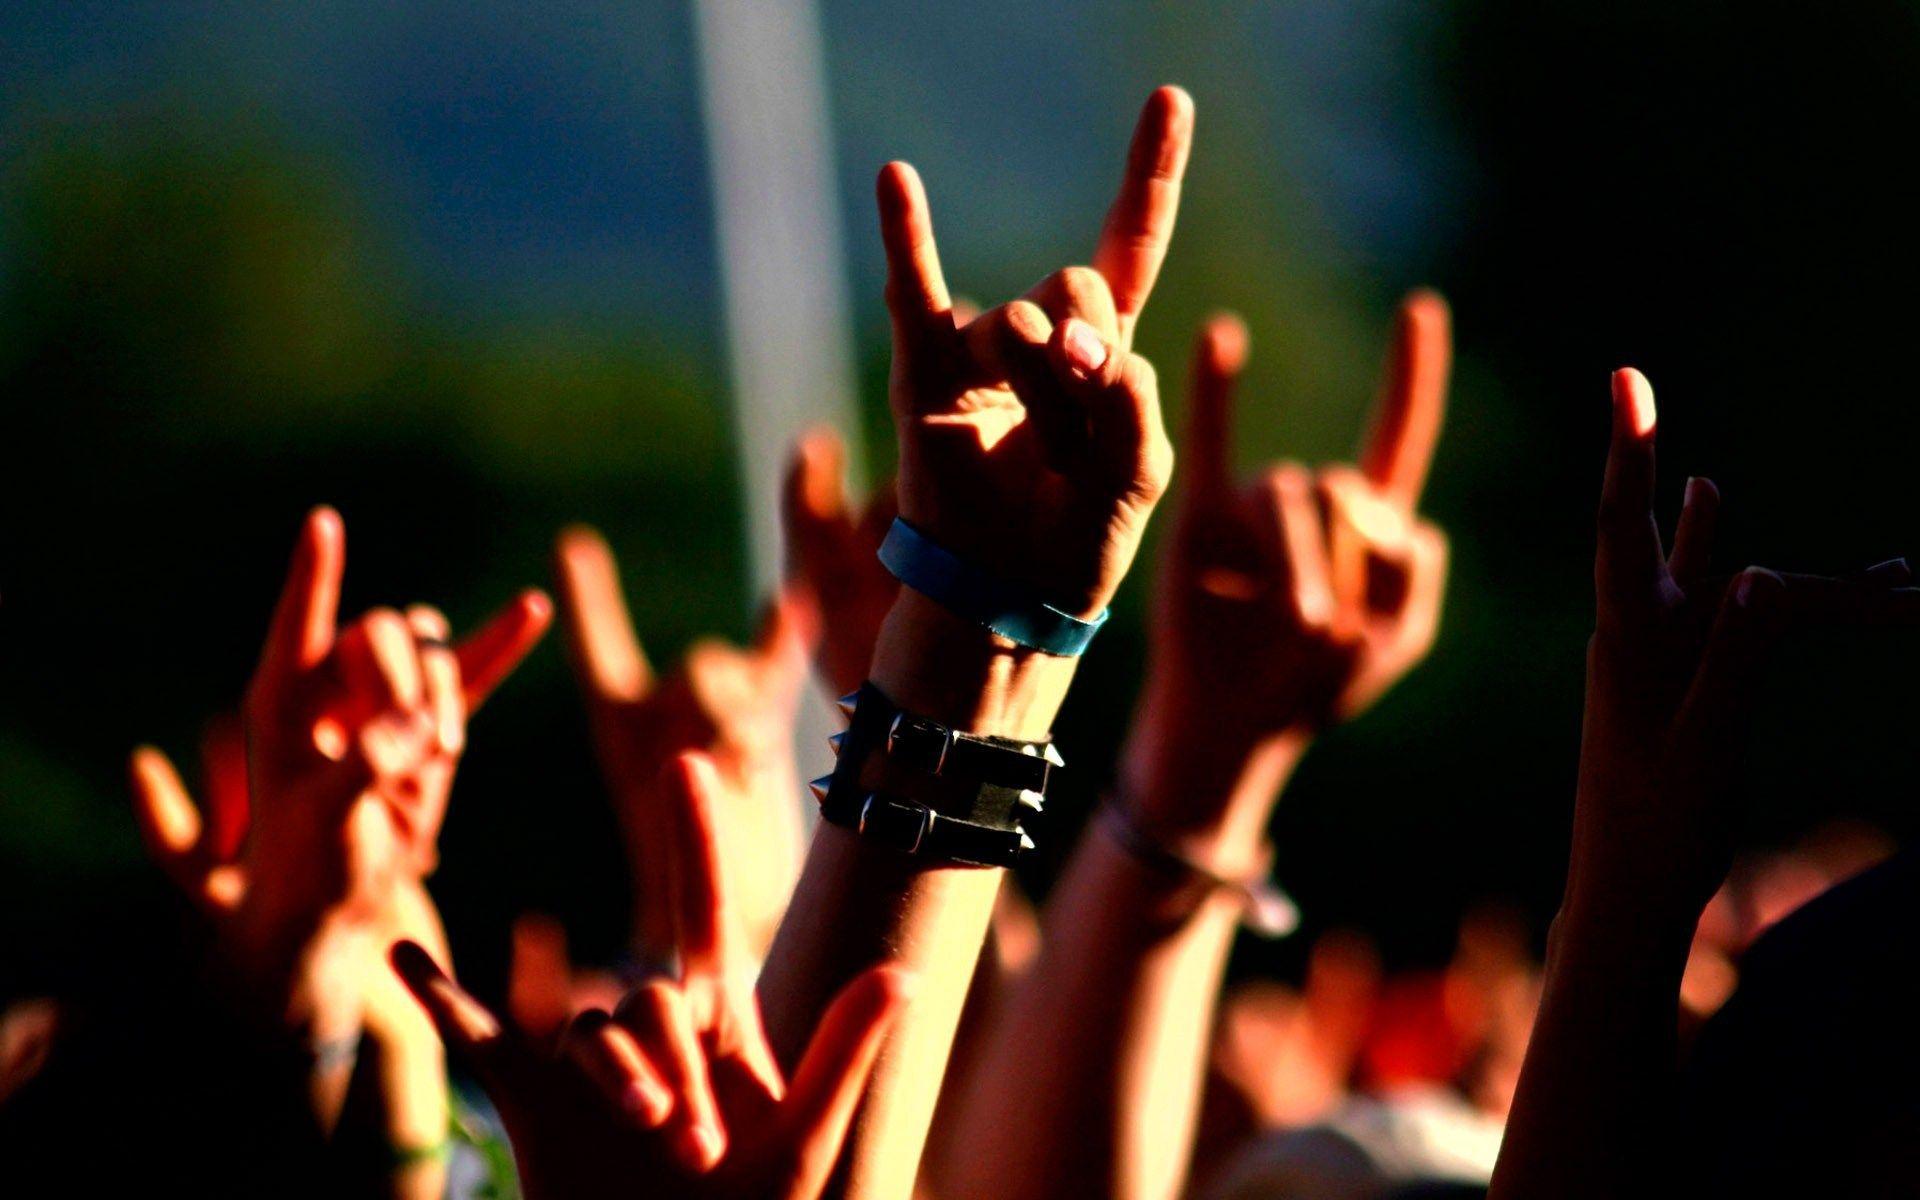 Rock and Metal fans - gigs and nights out